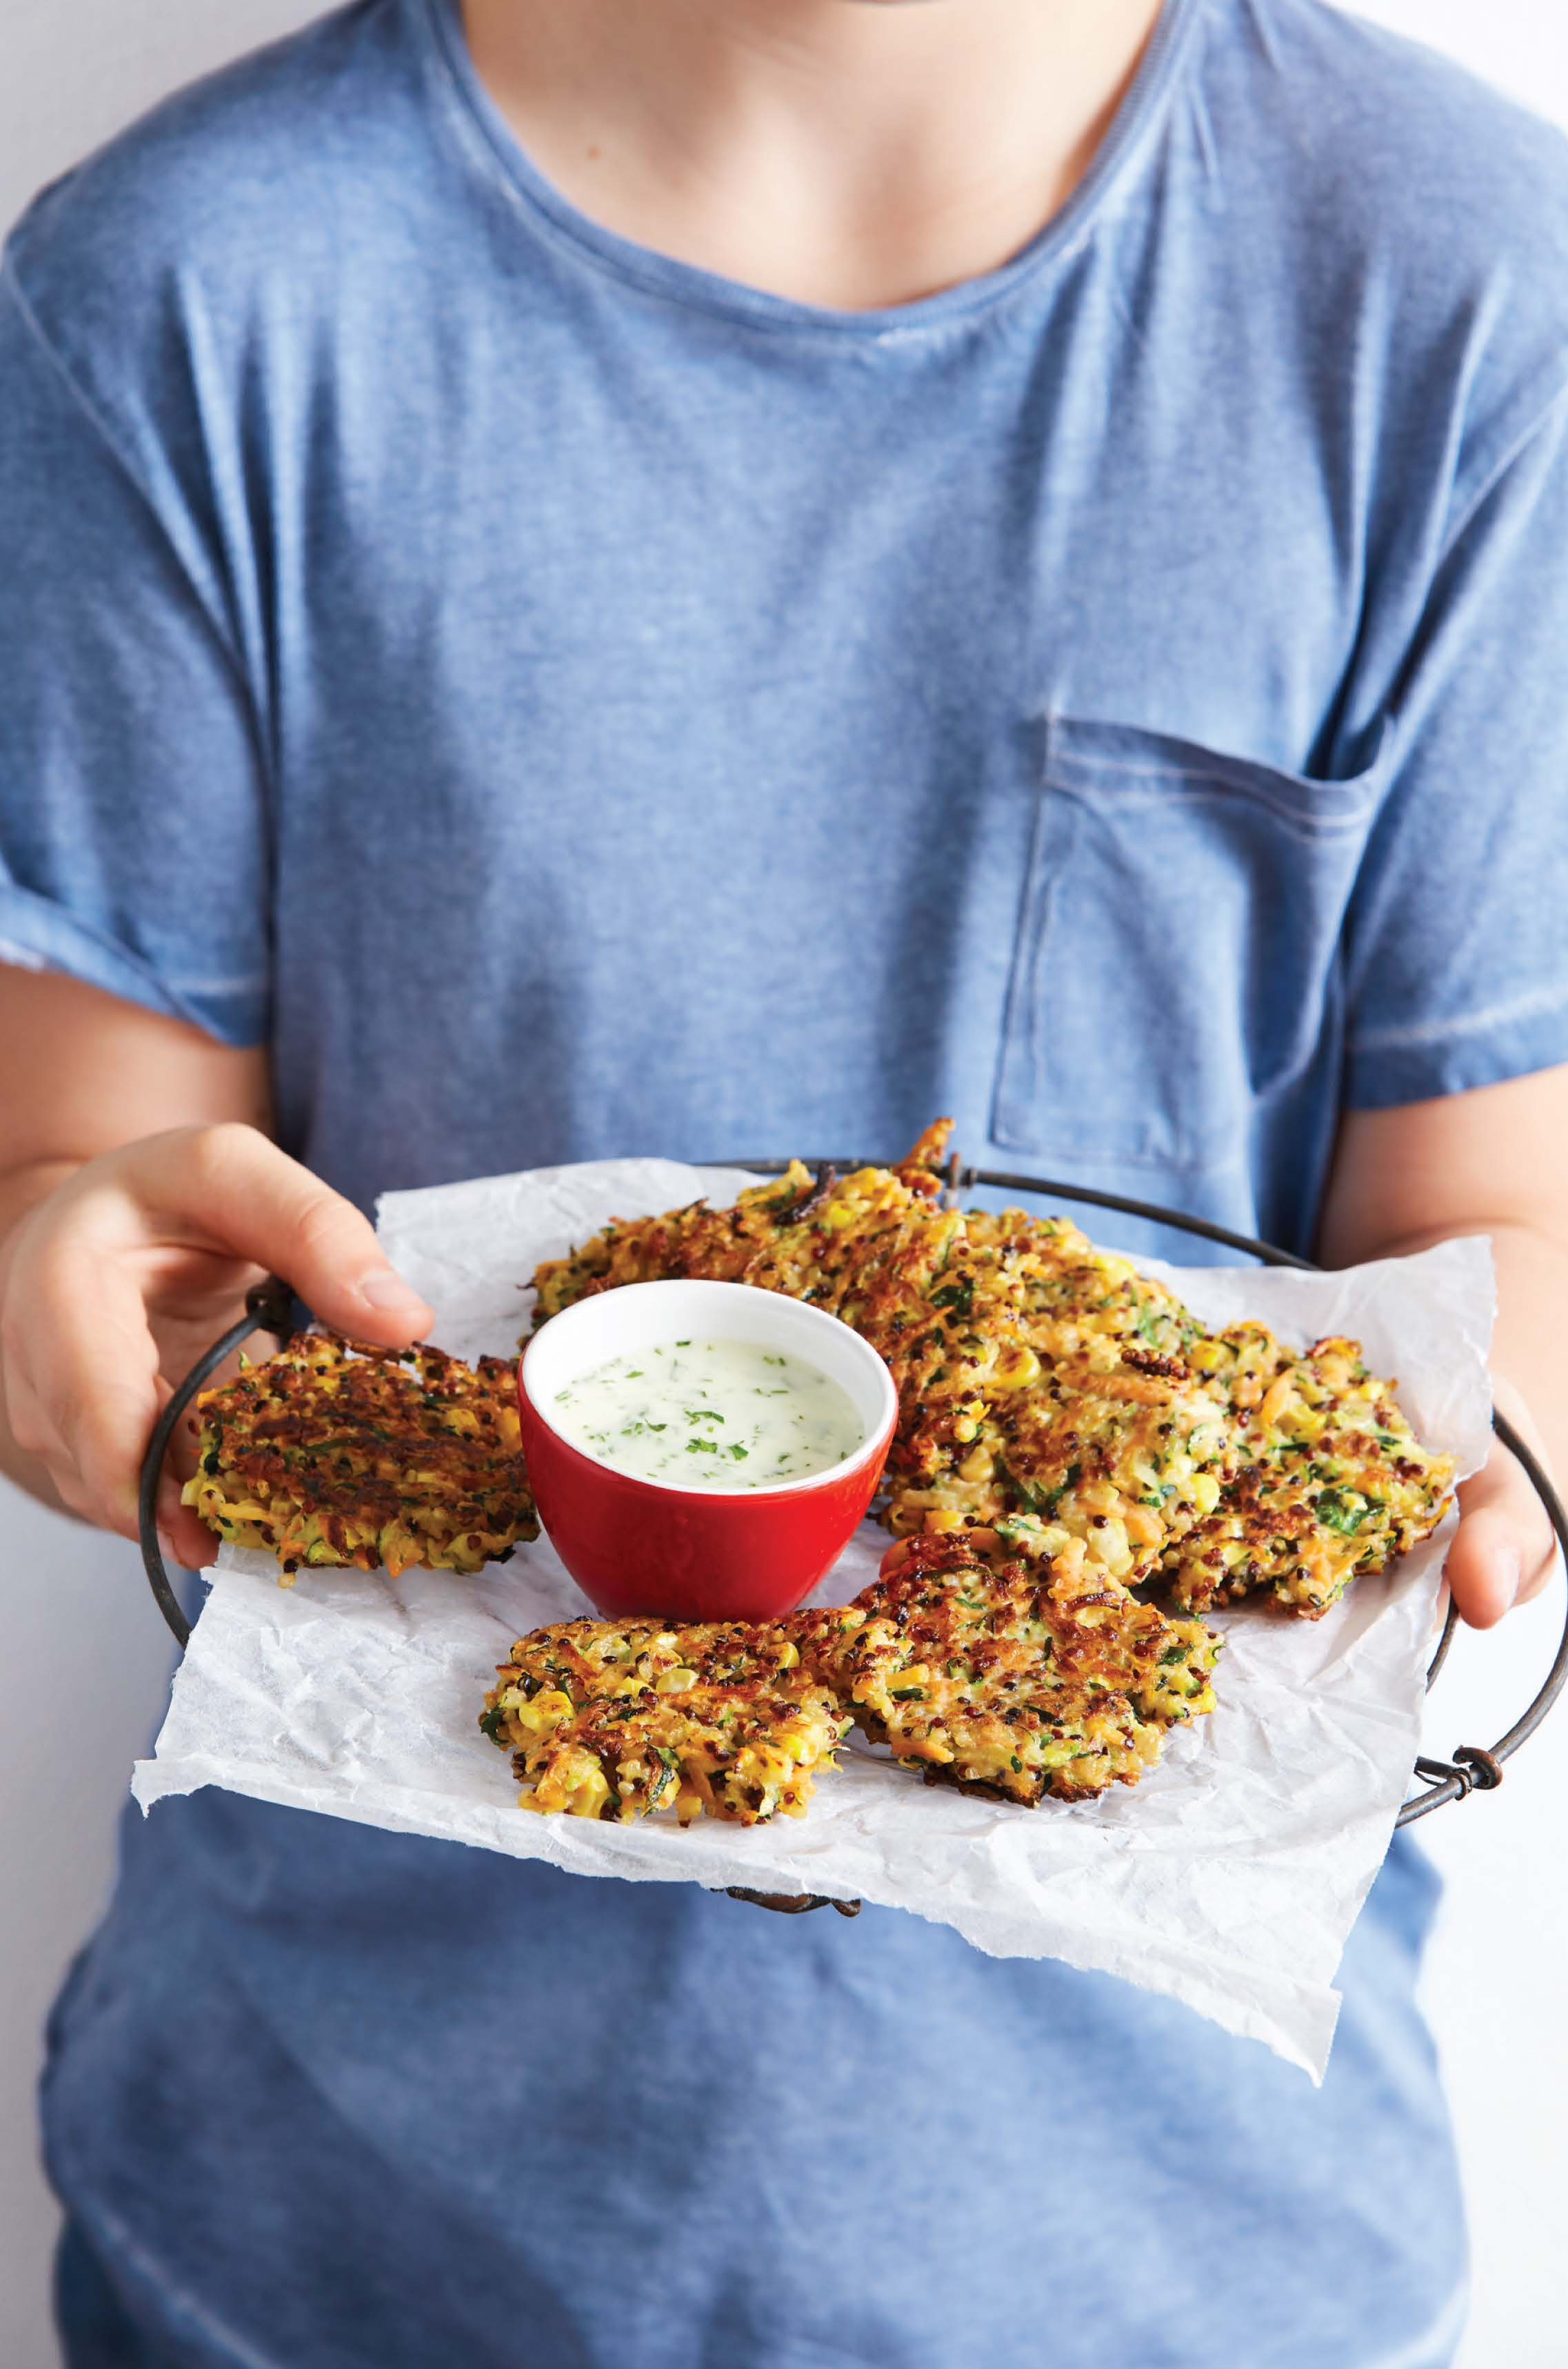 Crunchy quinoa and vegetable fritters with lemon and herb mayonnaise